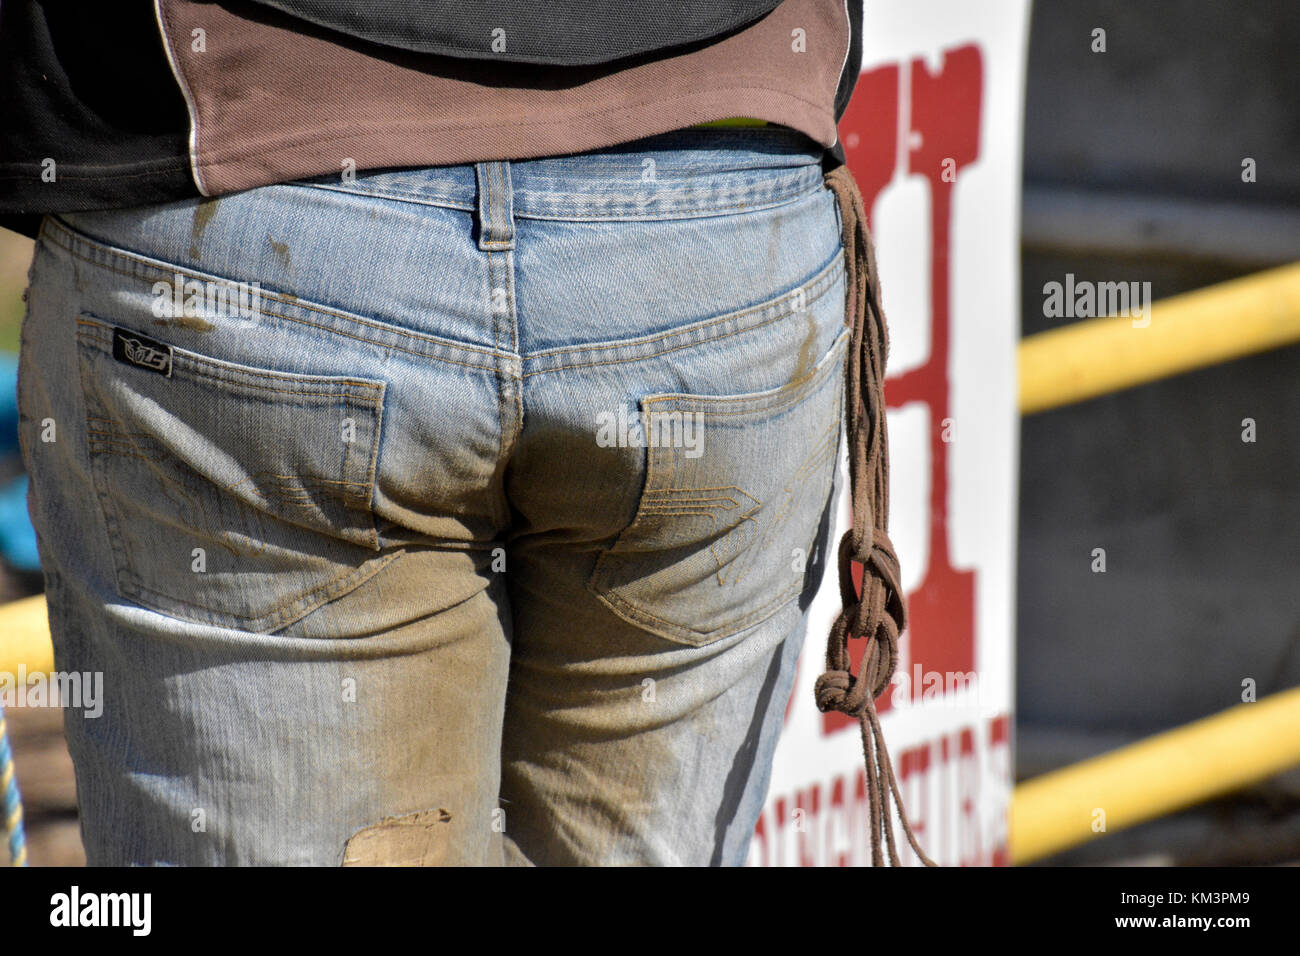 COWBOY BUMS IN DUSTY BLUE JEANS - Stock Image